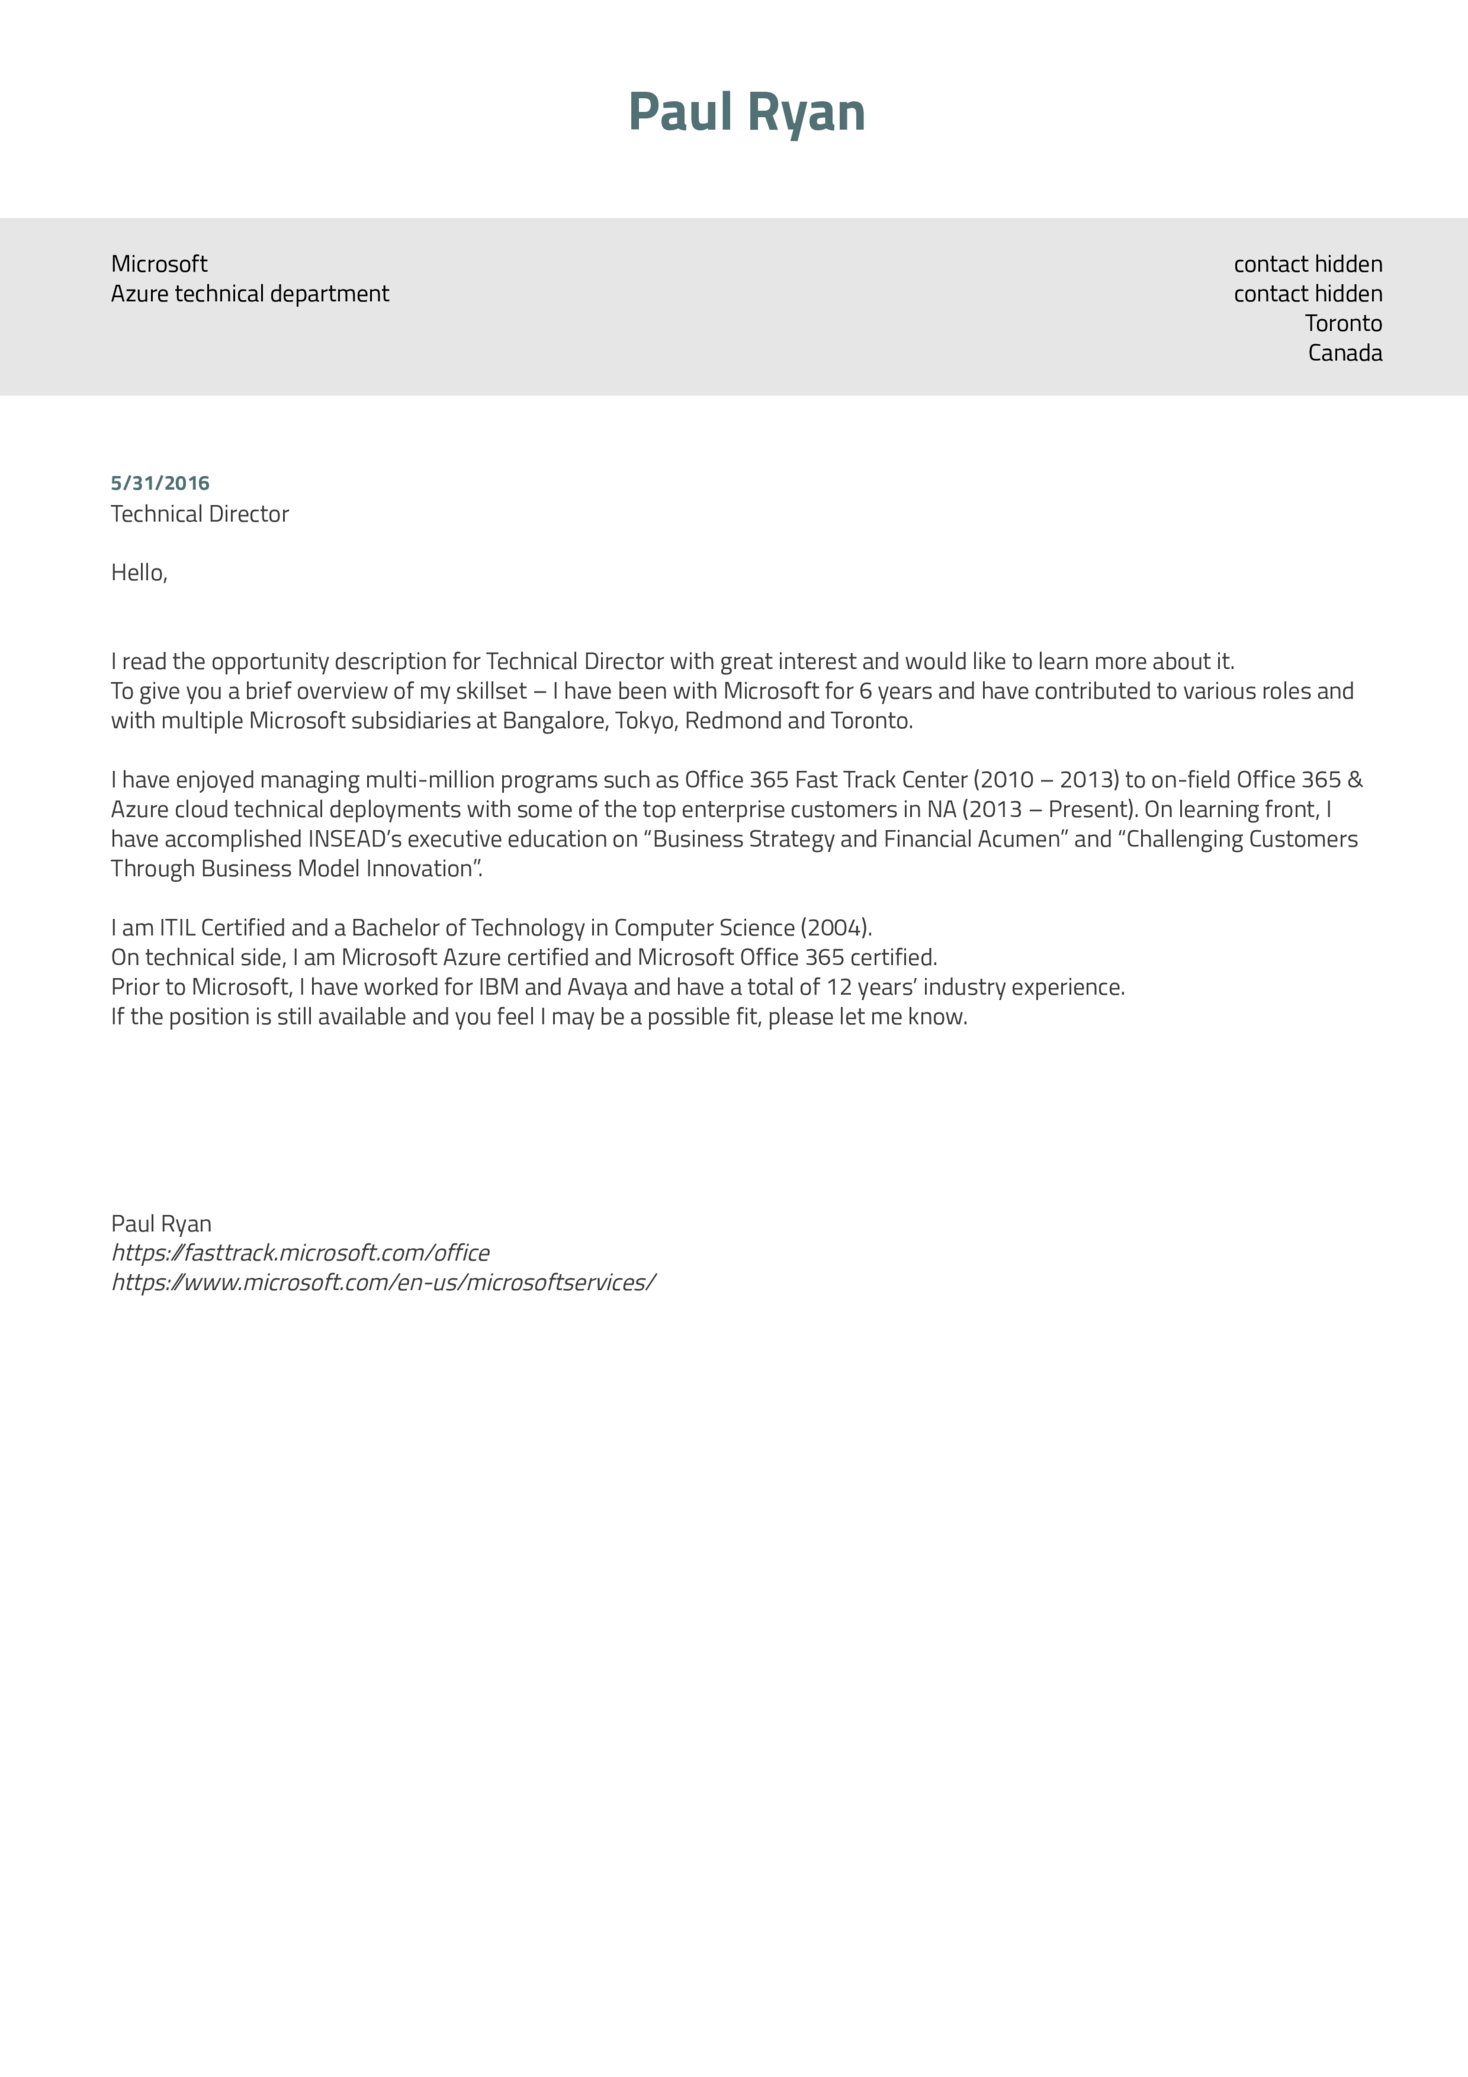 Cover Letter Examples by Real People: Microsoft technical ...